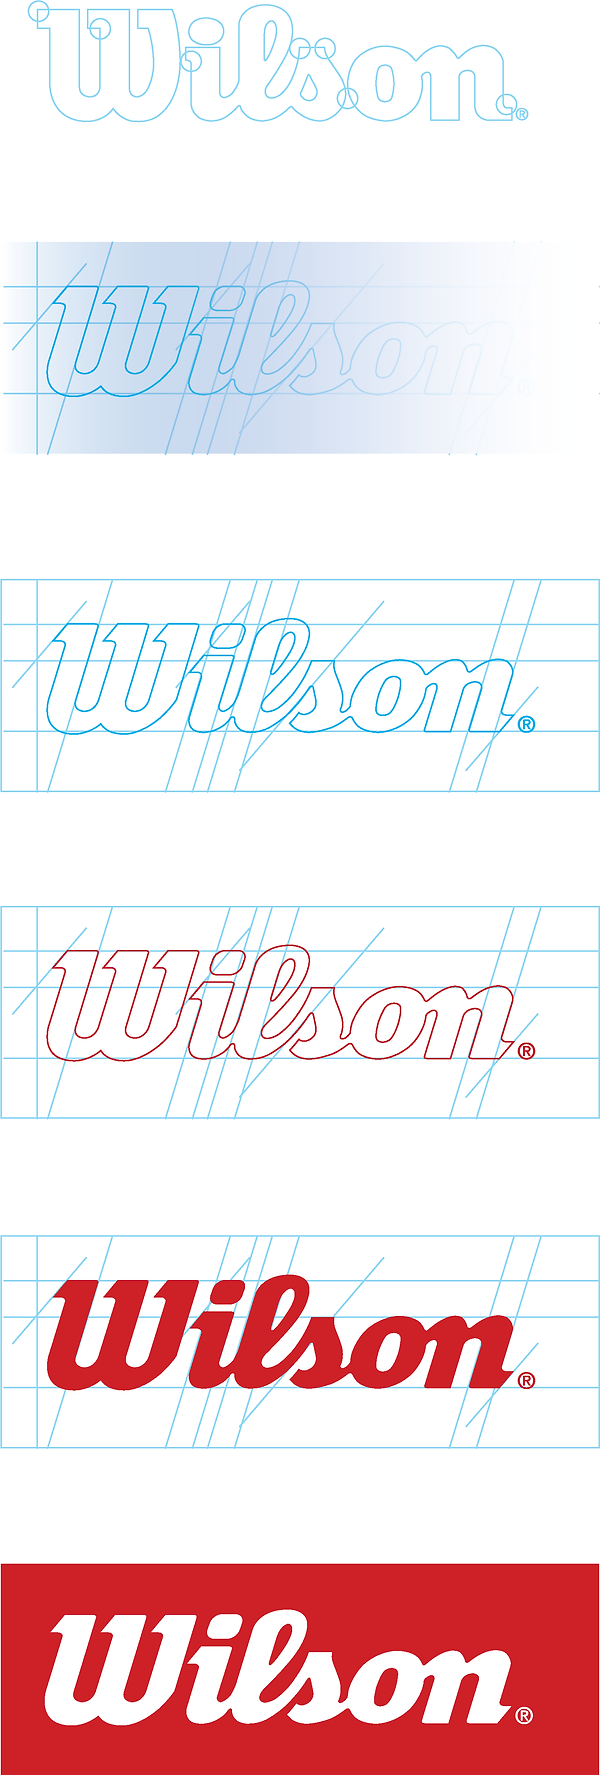 Wilson sketches.png